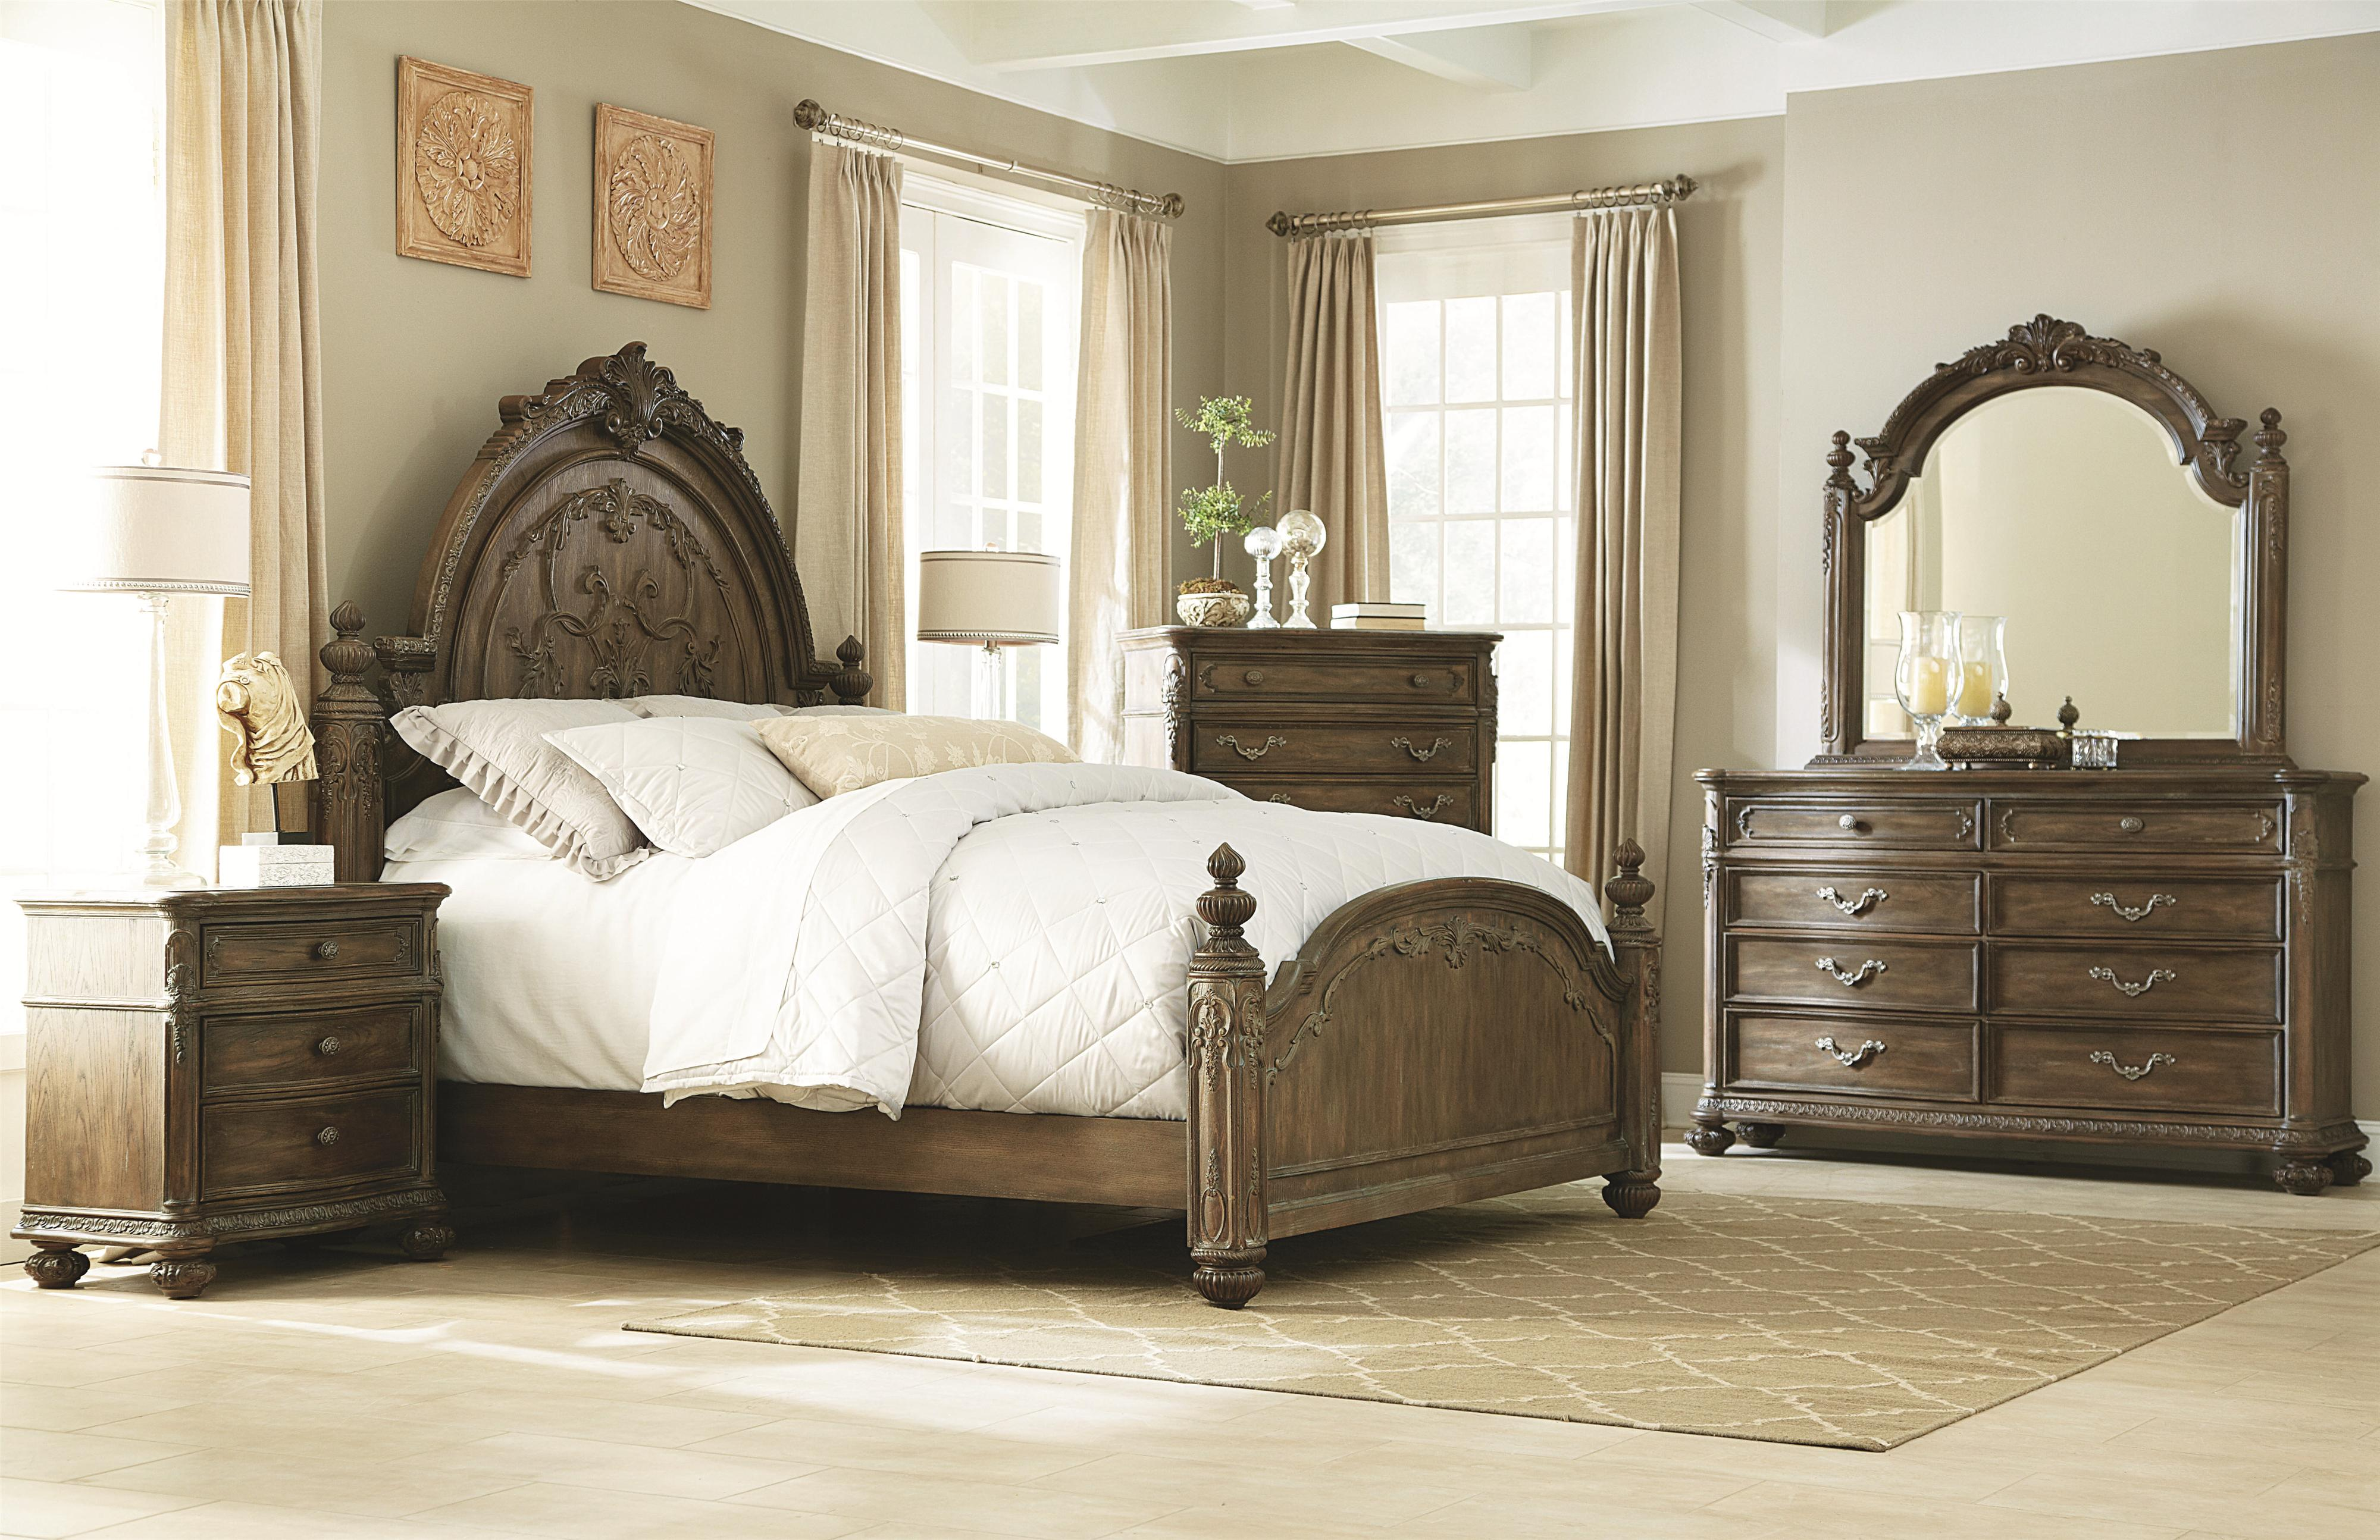 Charming American Drew Jessica McClintock Home   The Boutique Collection King Bedroom  Group   Wayside Furniture   Bedroom Groups